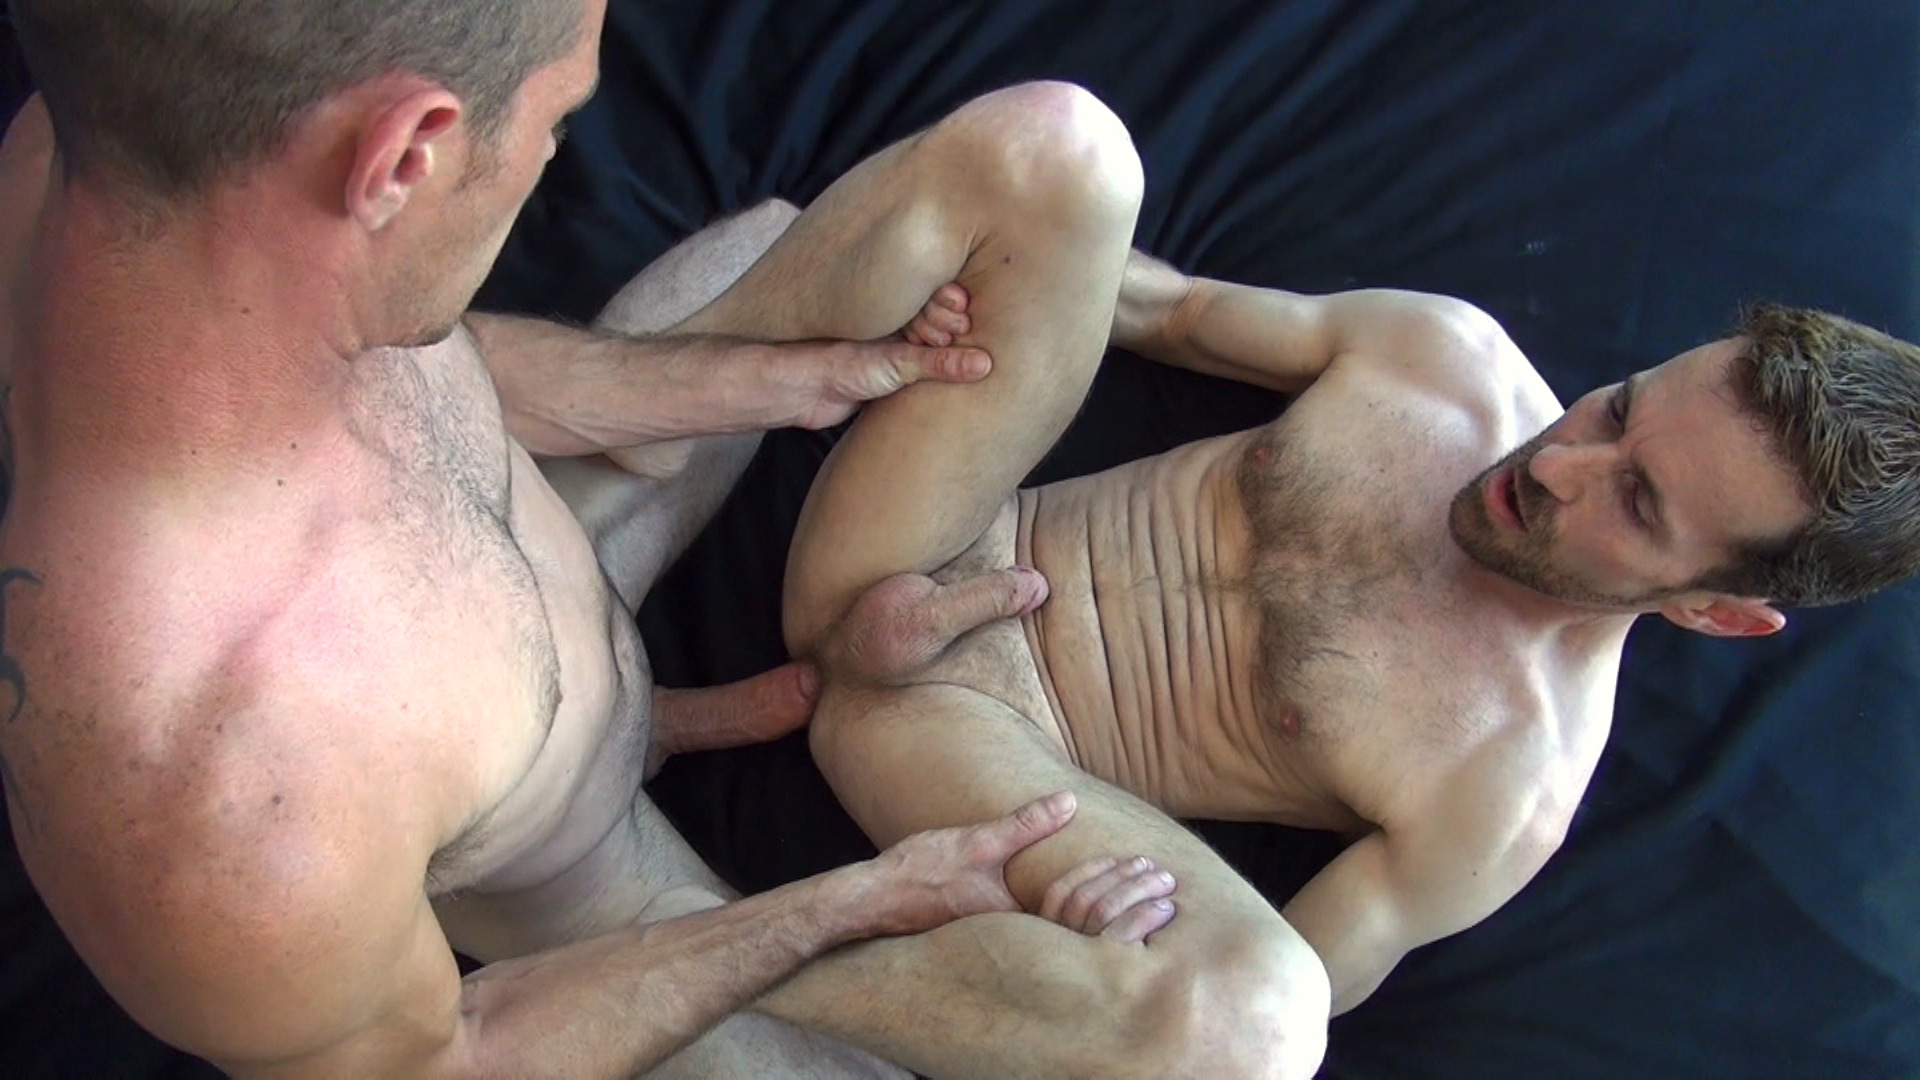 Brett Bradley fucks Sean Storm bareback on gay porn site Raw Fuck Club.